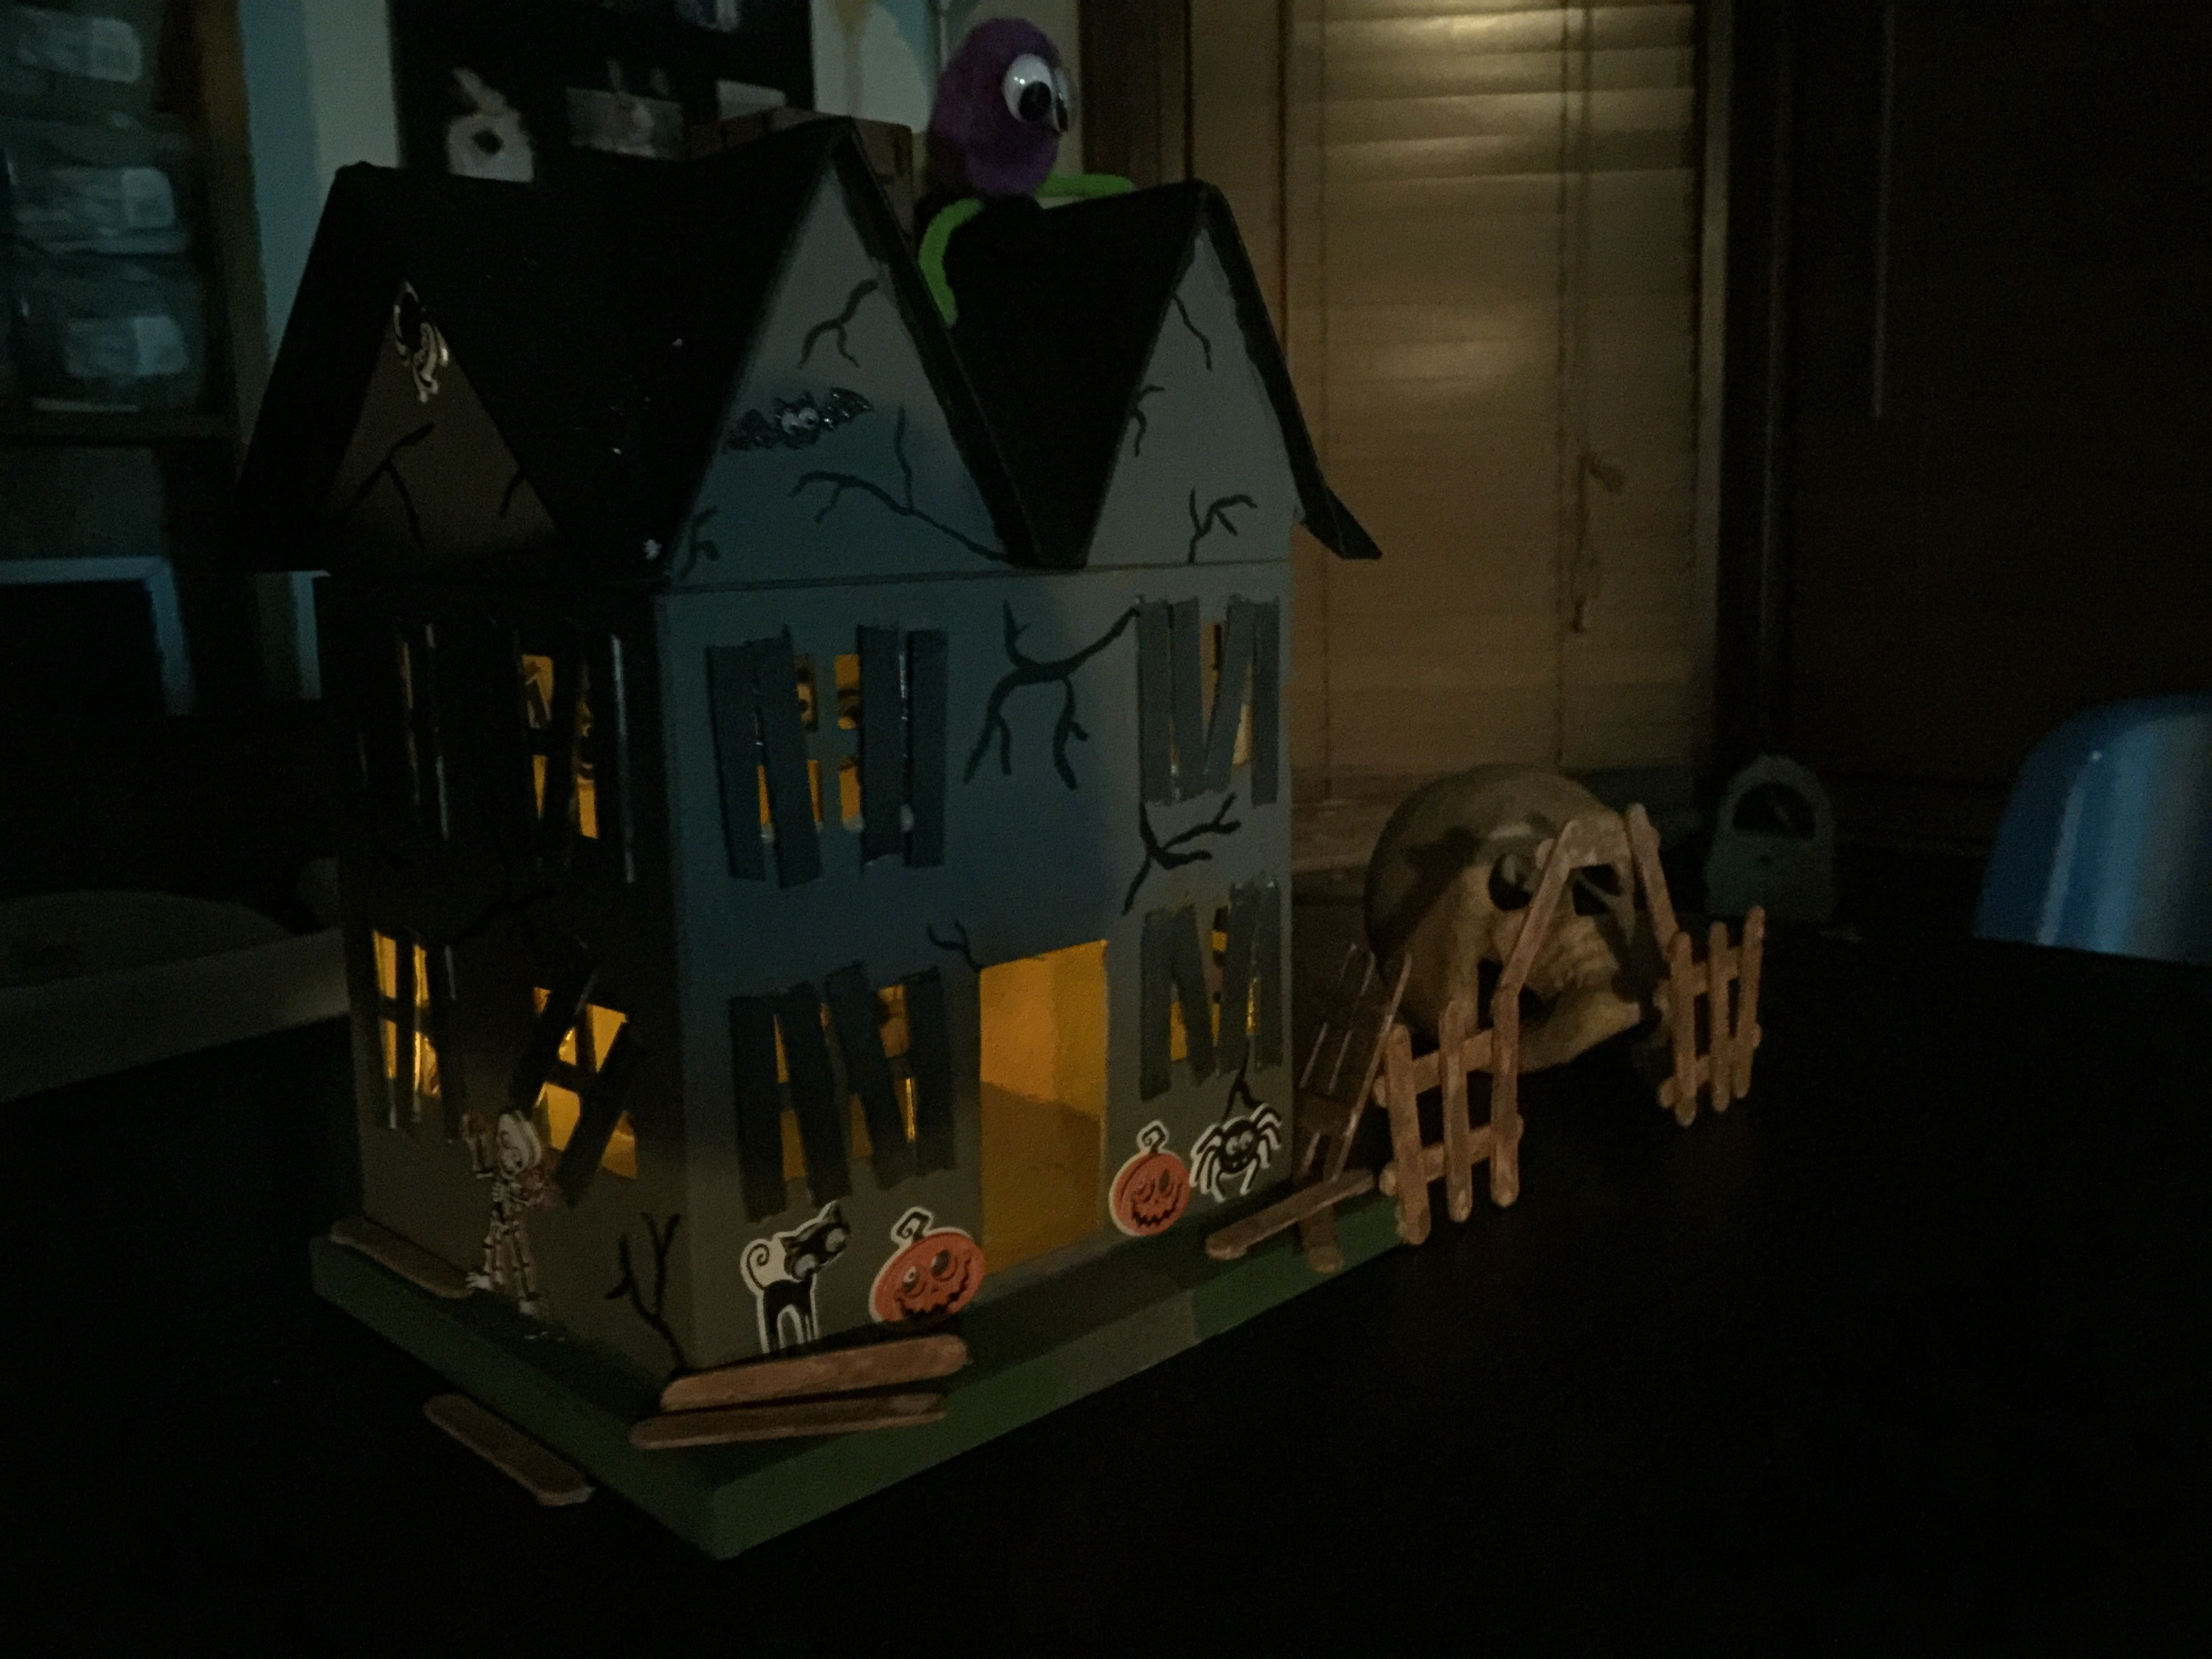 A Crafty Haunted House St Louis Dad